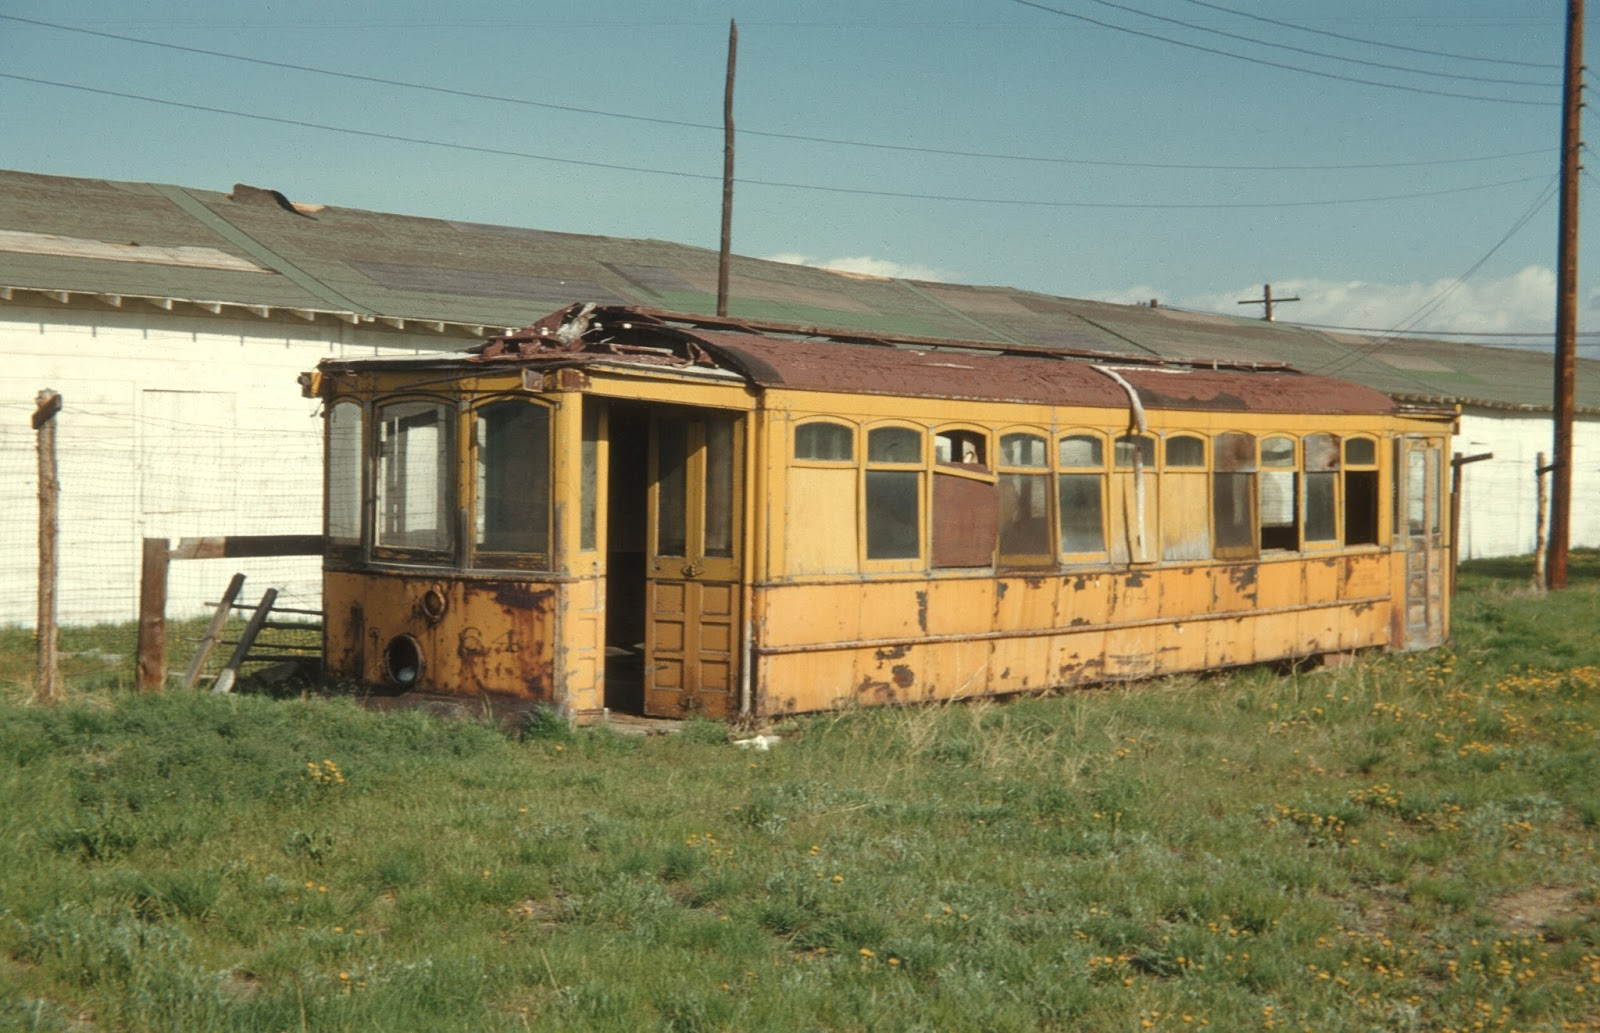 Hicks Car Works: Diners and More, Part 2 on hill mobile home, wilson mobile home, fuller mobile home, sanders mobile home, jennings mobile home, texas mobile home, green mobile home, kelly mobile home, graham mobile home, palmer mobile home, nelson mobile home, stone mobile home,